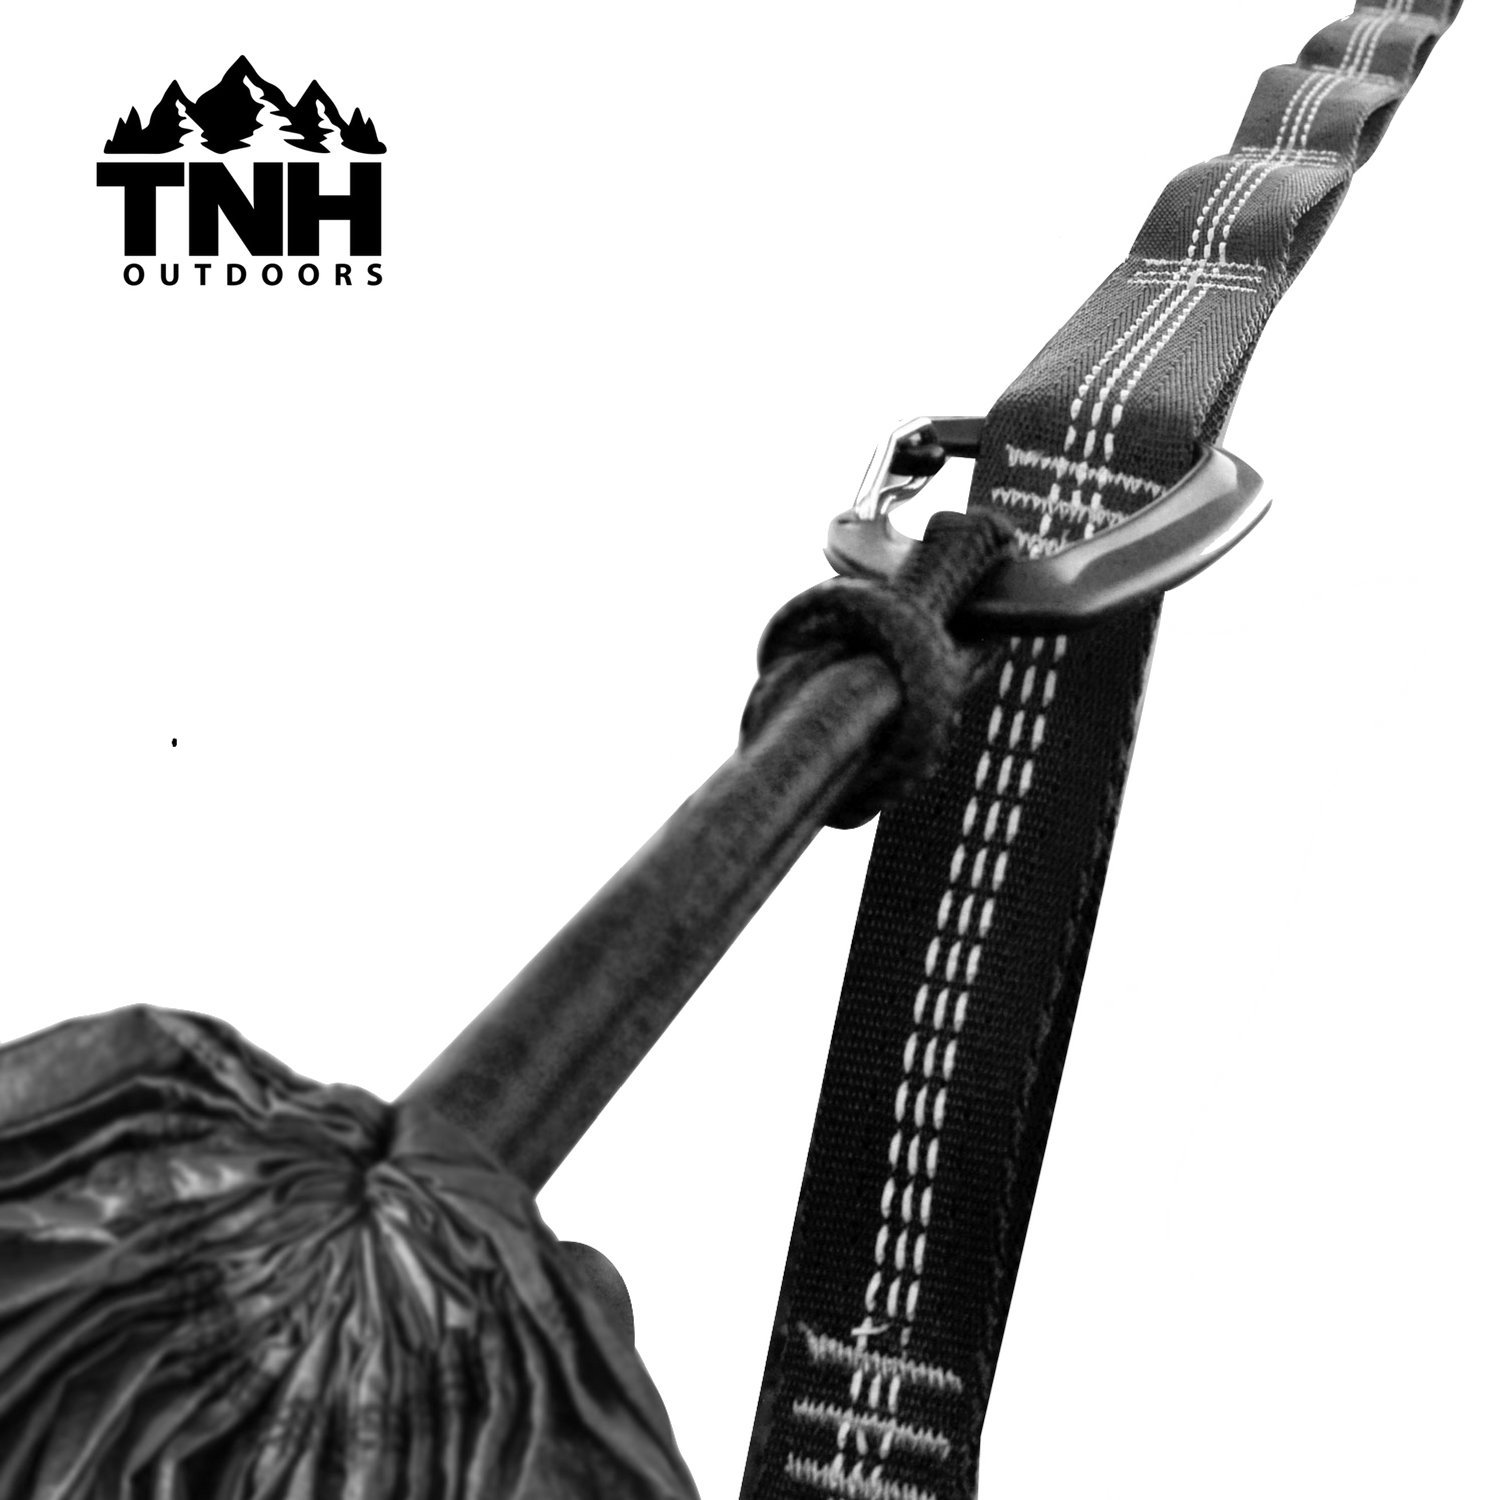 TNH Outdoors Camping Hammock Tree Straps by with Lumin Stitch Technology & High VIZ. Adjustable, Portable and Lightweight 9 ft Heavy Duty XL Hammock Straps To Enhance Your Hangout.